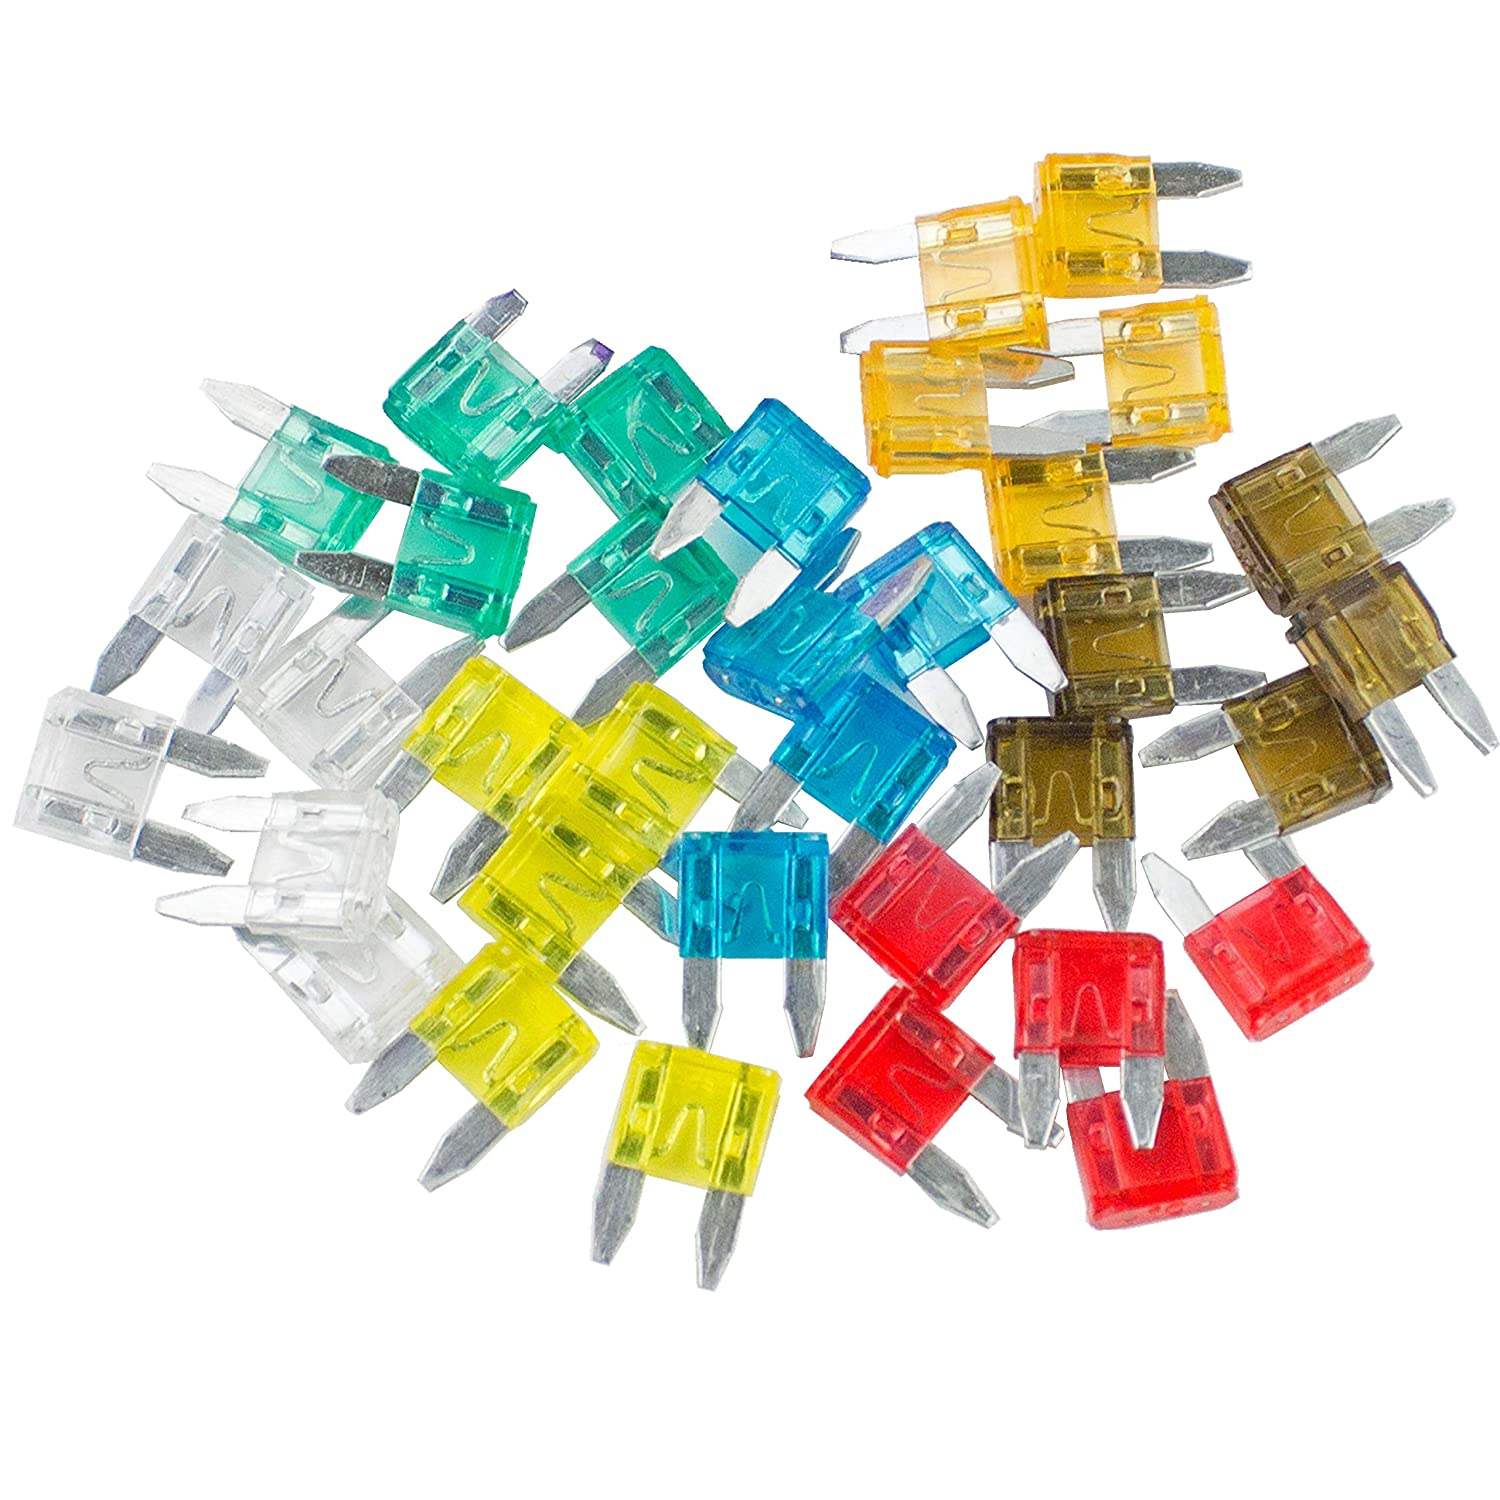 1 Combo Kit 5-30 AMP Mini APM//ATM 32V Mini Blade Style Fuses Short Circuit Protection Car Fuse 35 Pieces - 5 of Each Fuse